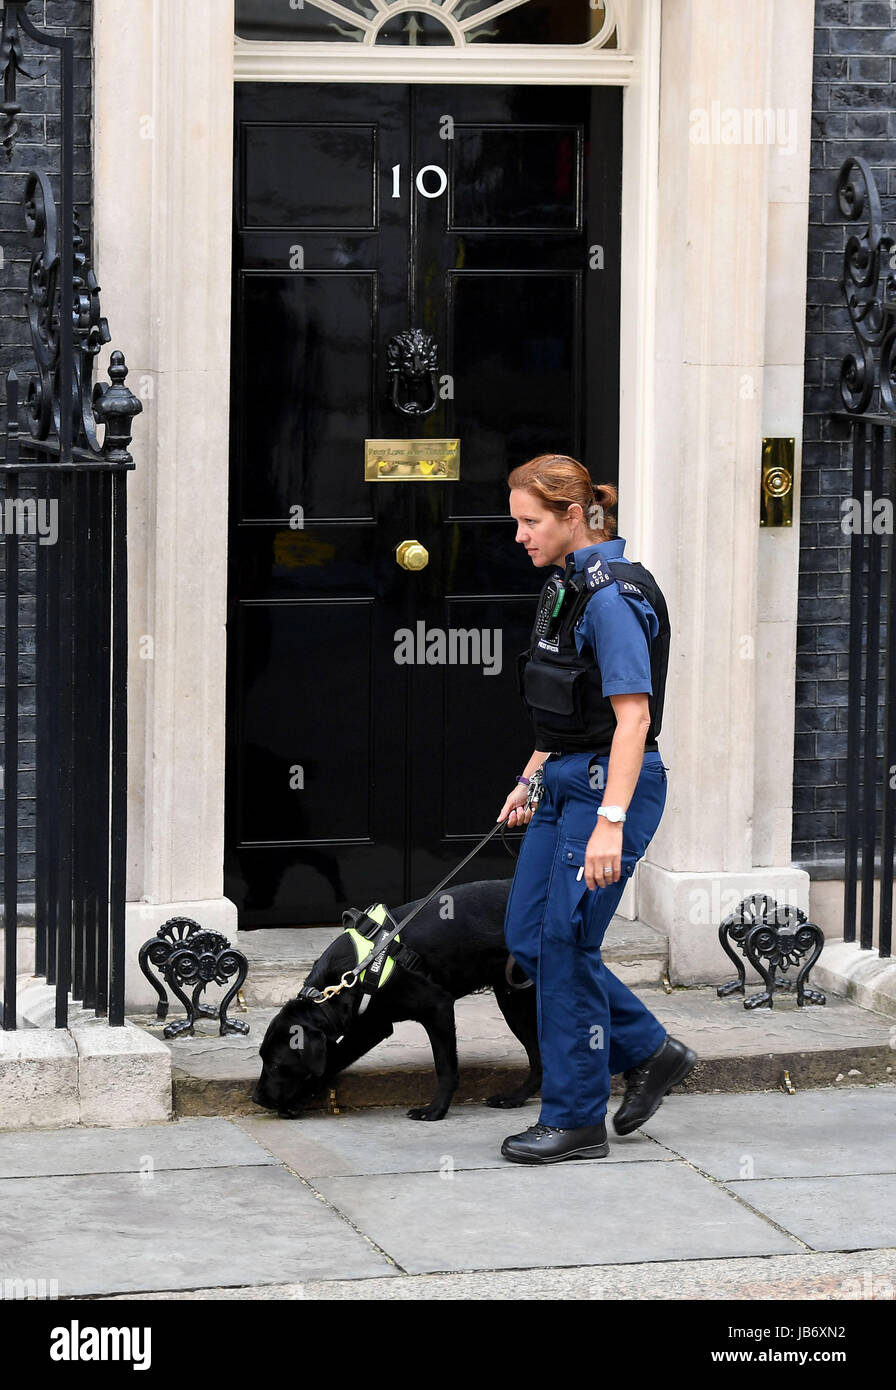 Police patrolling at Number 10 Downing Street, London, UK. Security at Downing St - Stock Image